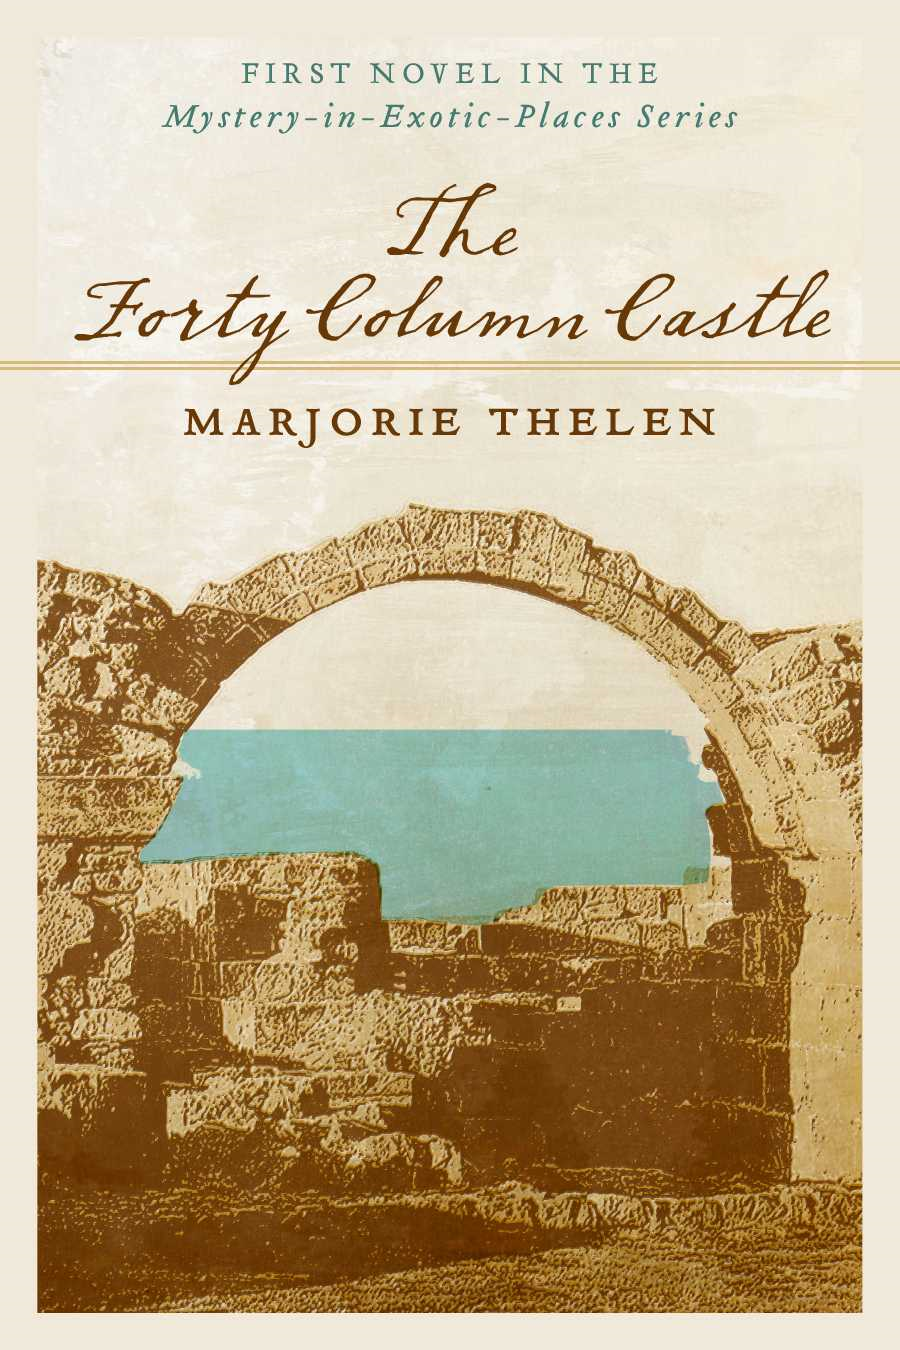 The Forty Column Castle: First Novel in the Mystery-in-Exotic-Places Series